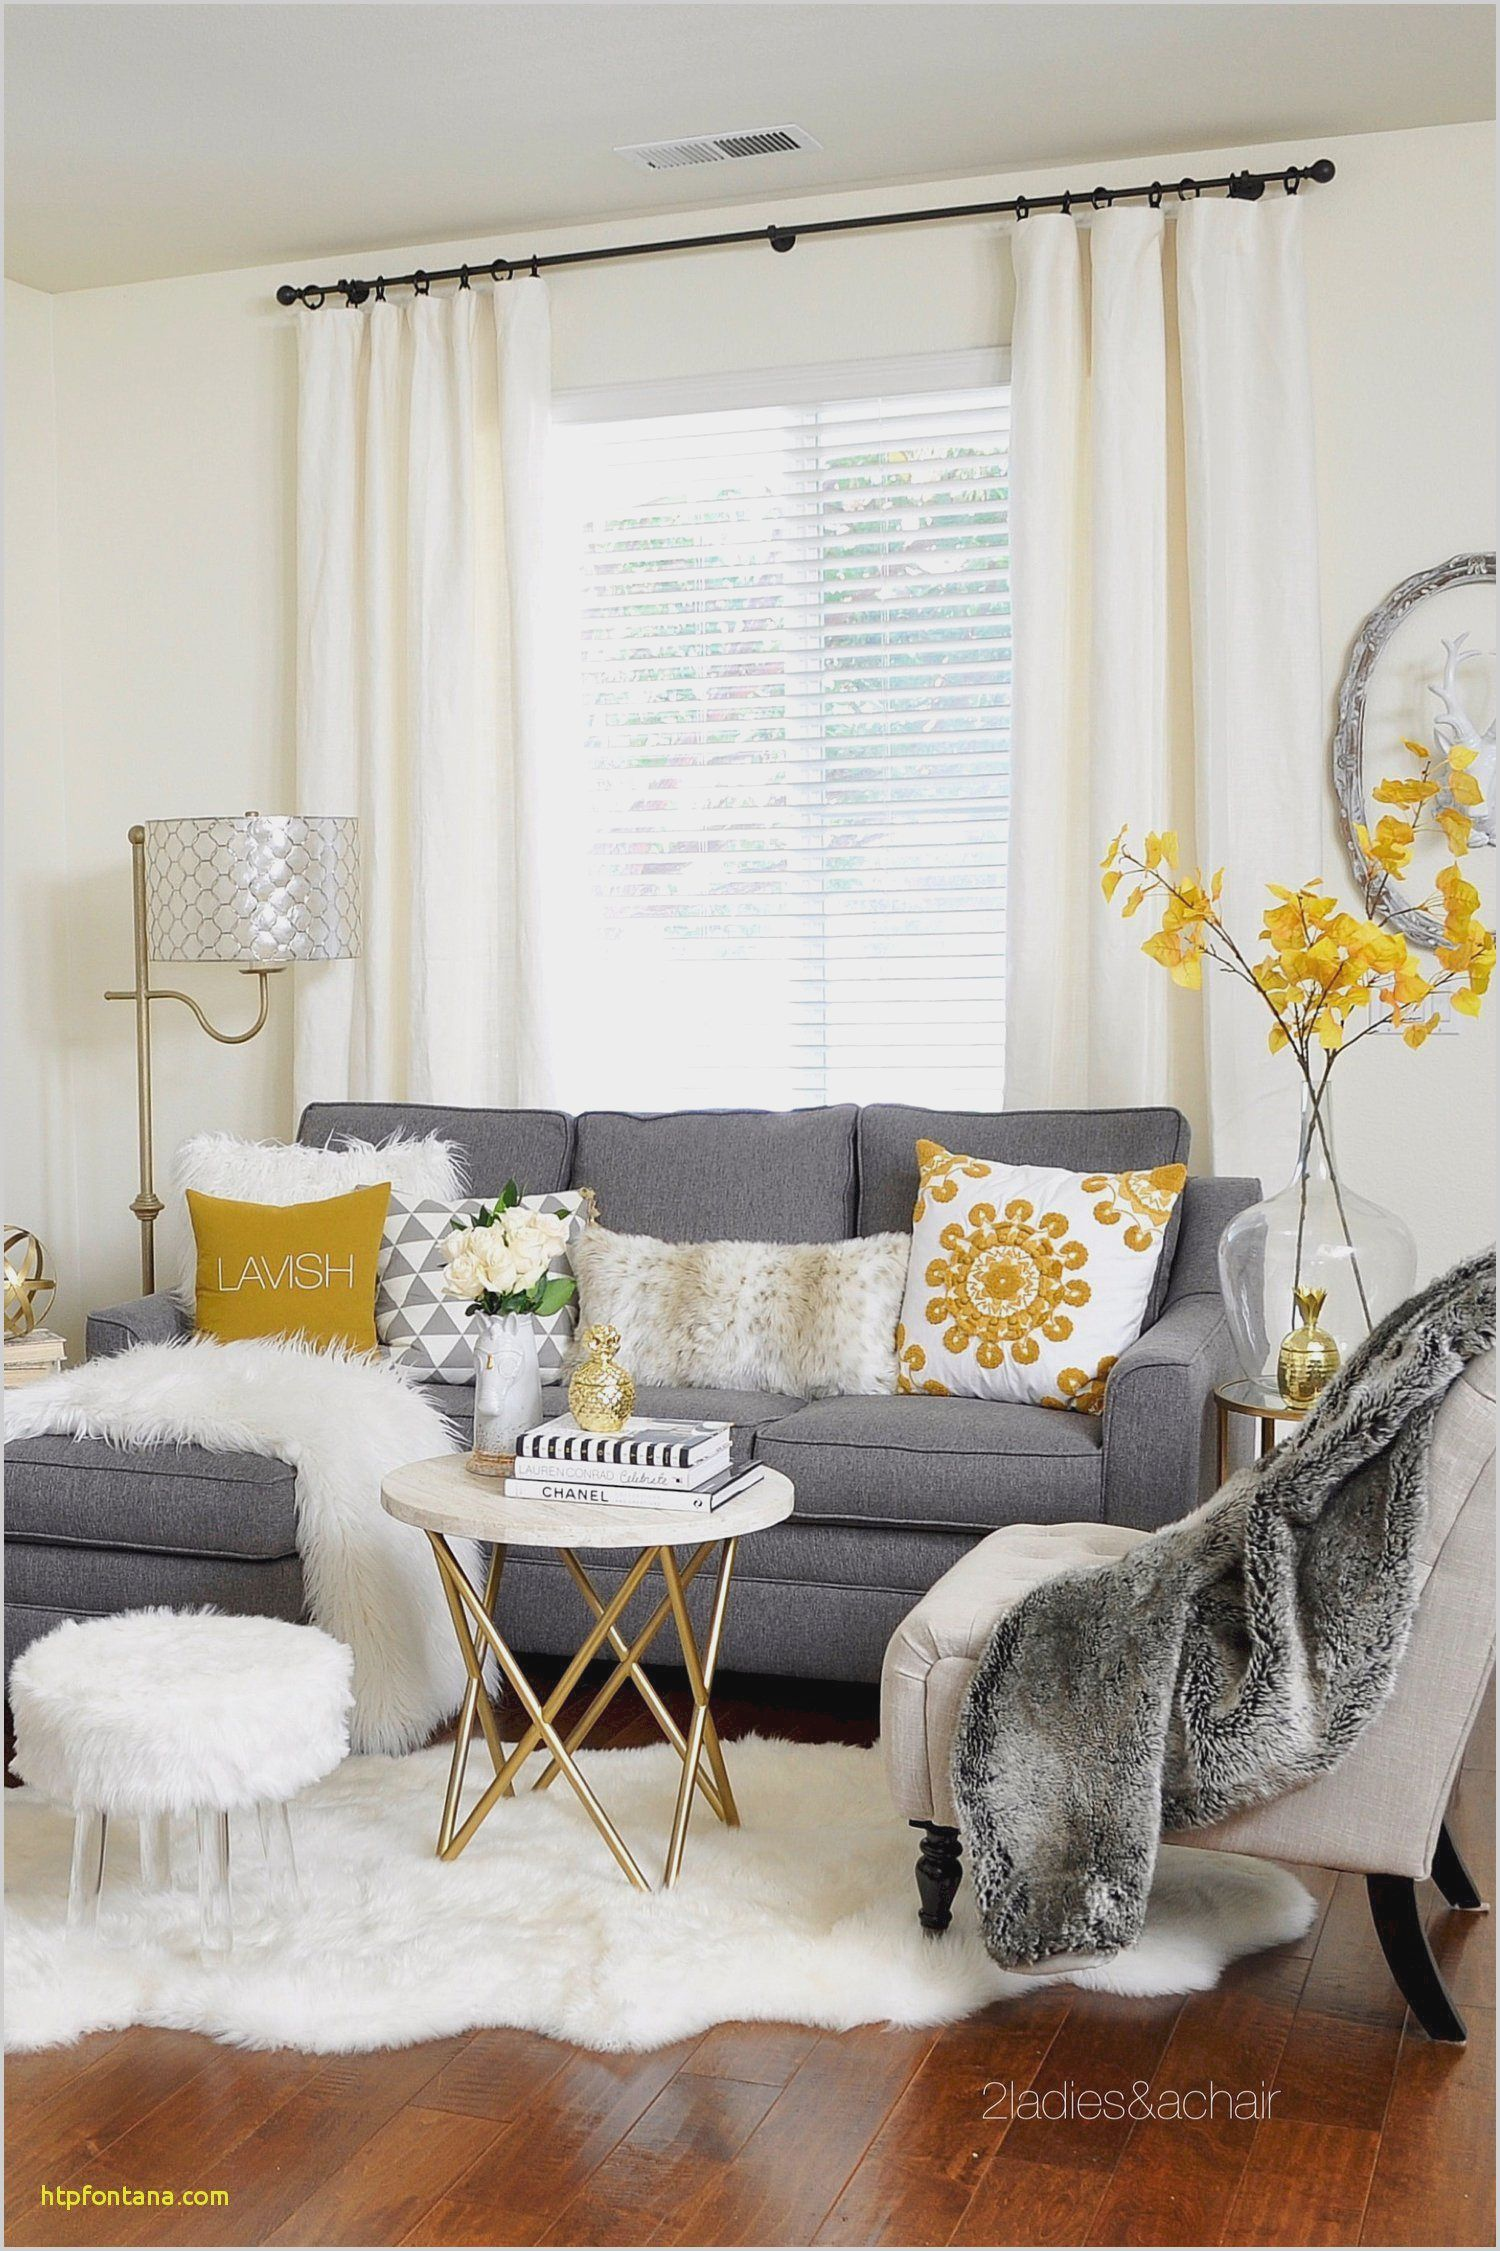 Small Living Room Ideas Grey And Yellow In 2020 Yellow Living Room Small Living Room Decor Living Room Furniture Arrangement